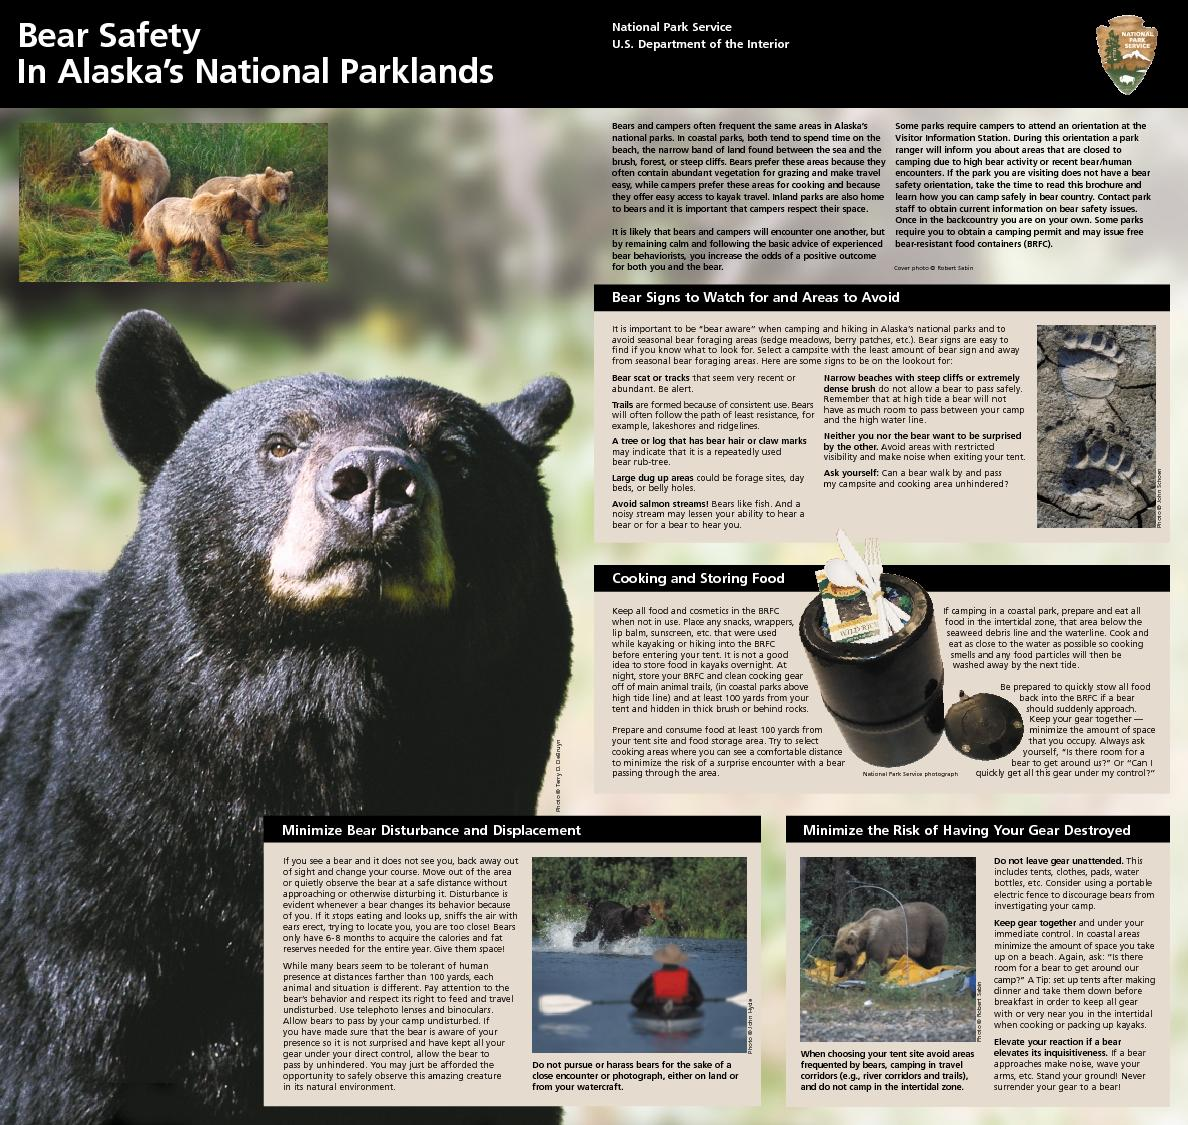 Bears and campers often frequent the same areas in Alaska